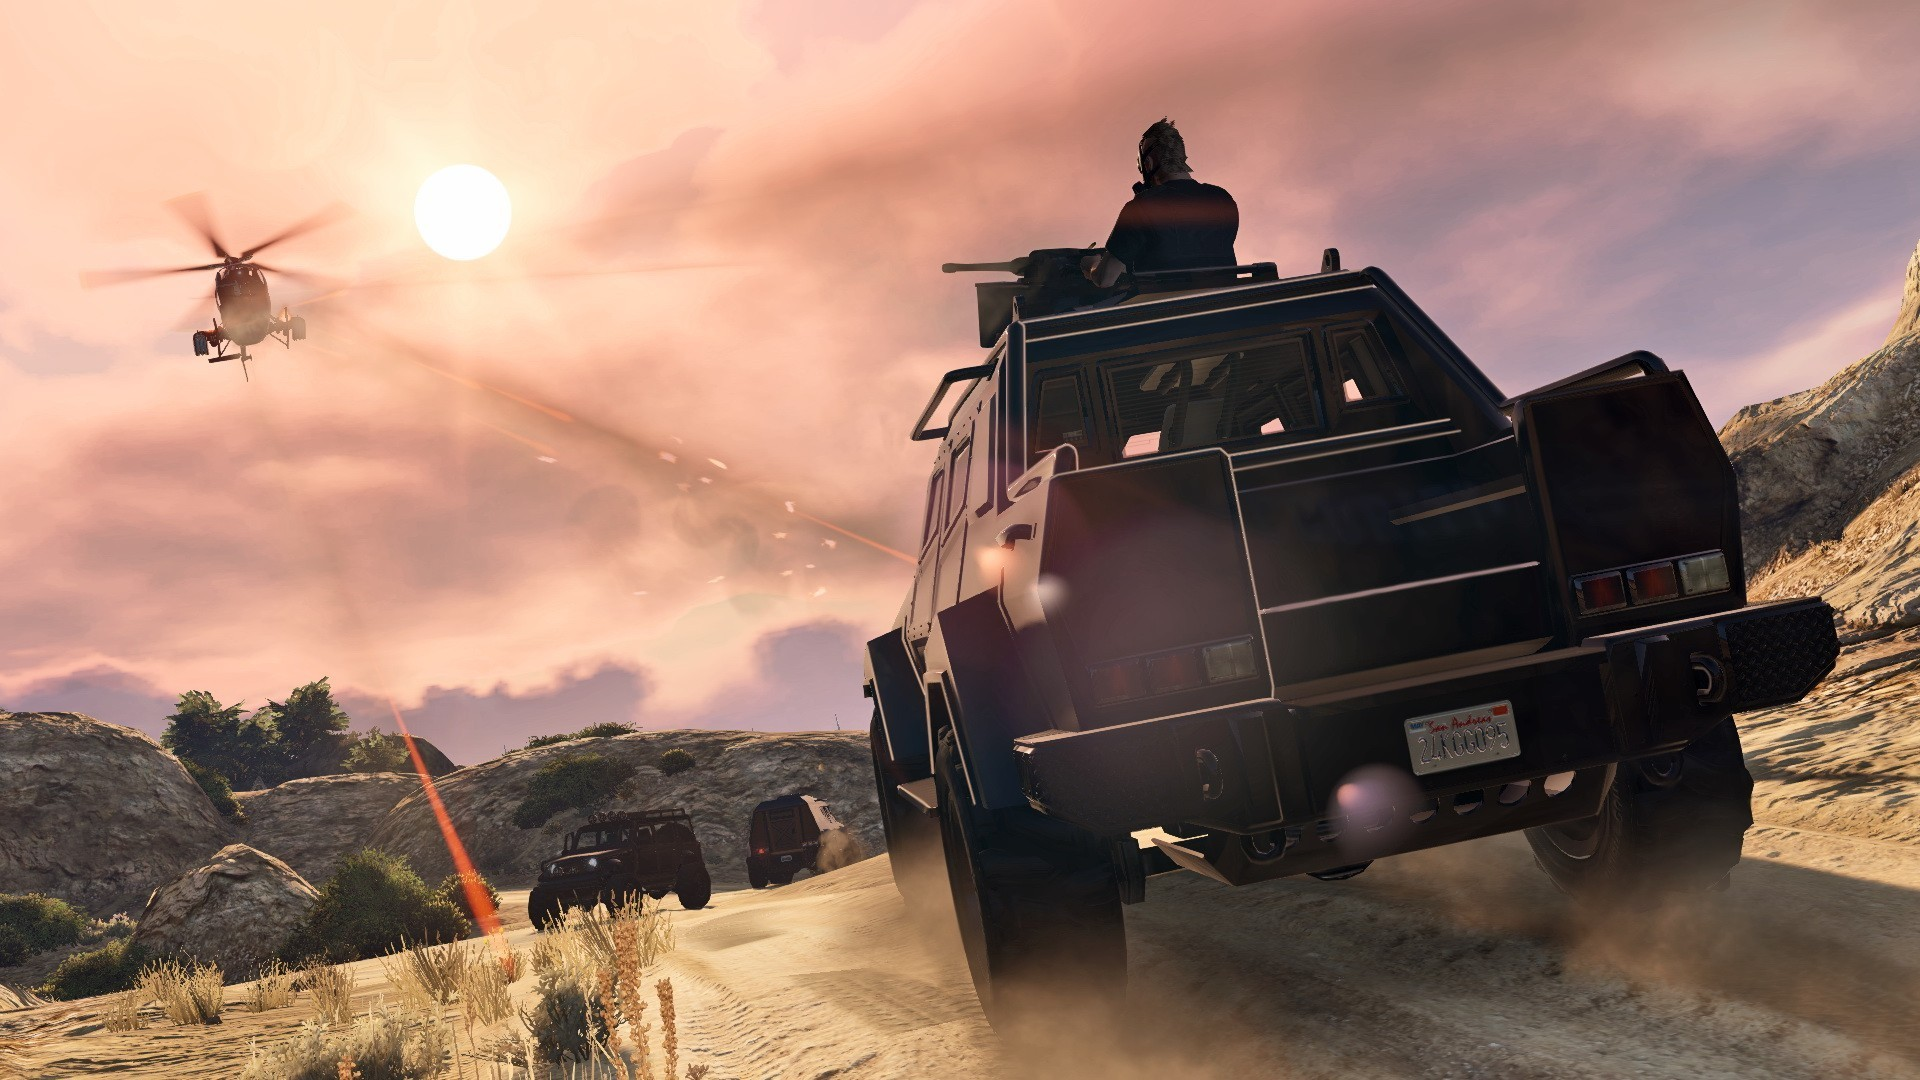 Five Online Heists Are Coming To Gta 5 With 20 Hours Of Gameplay